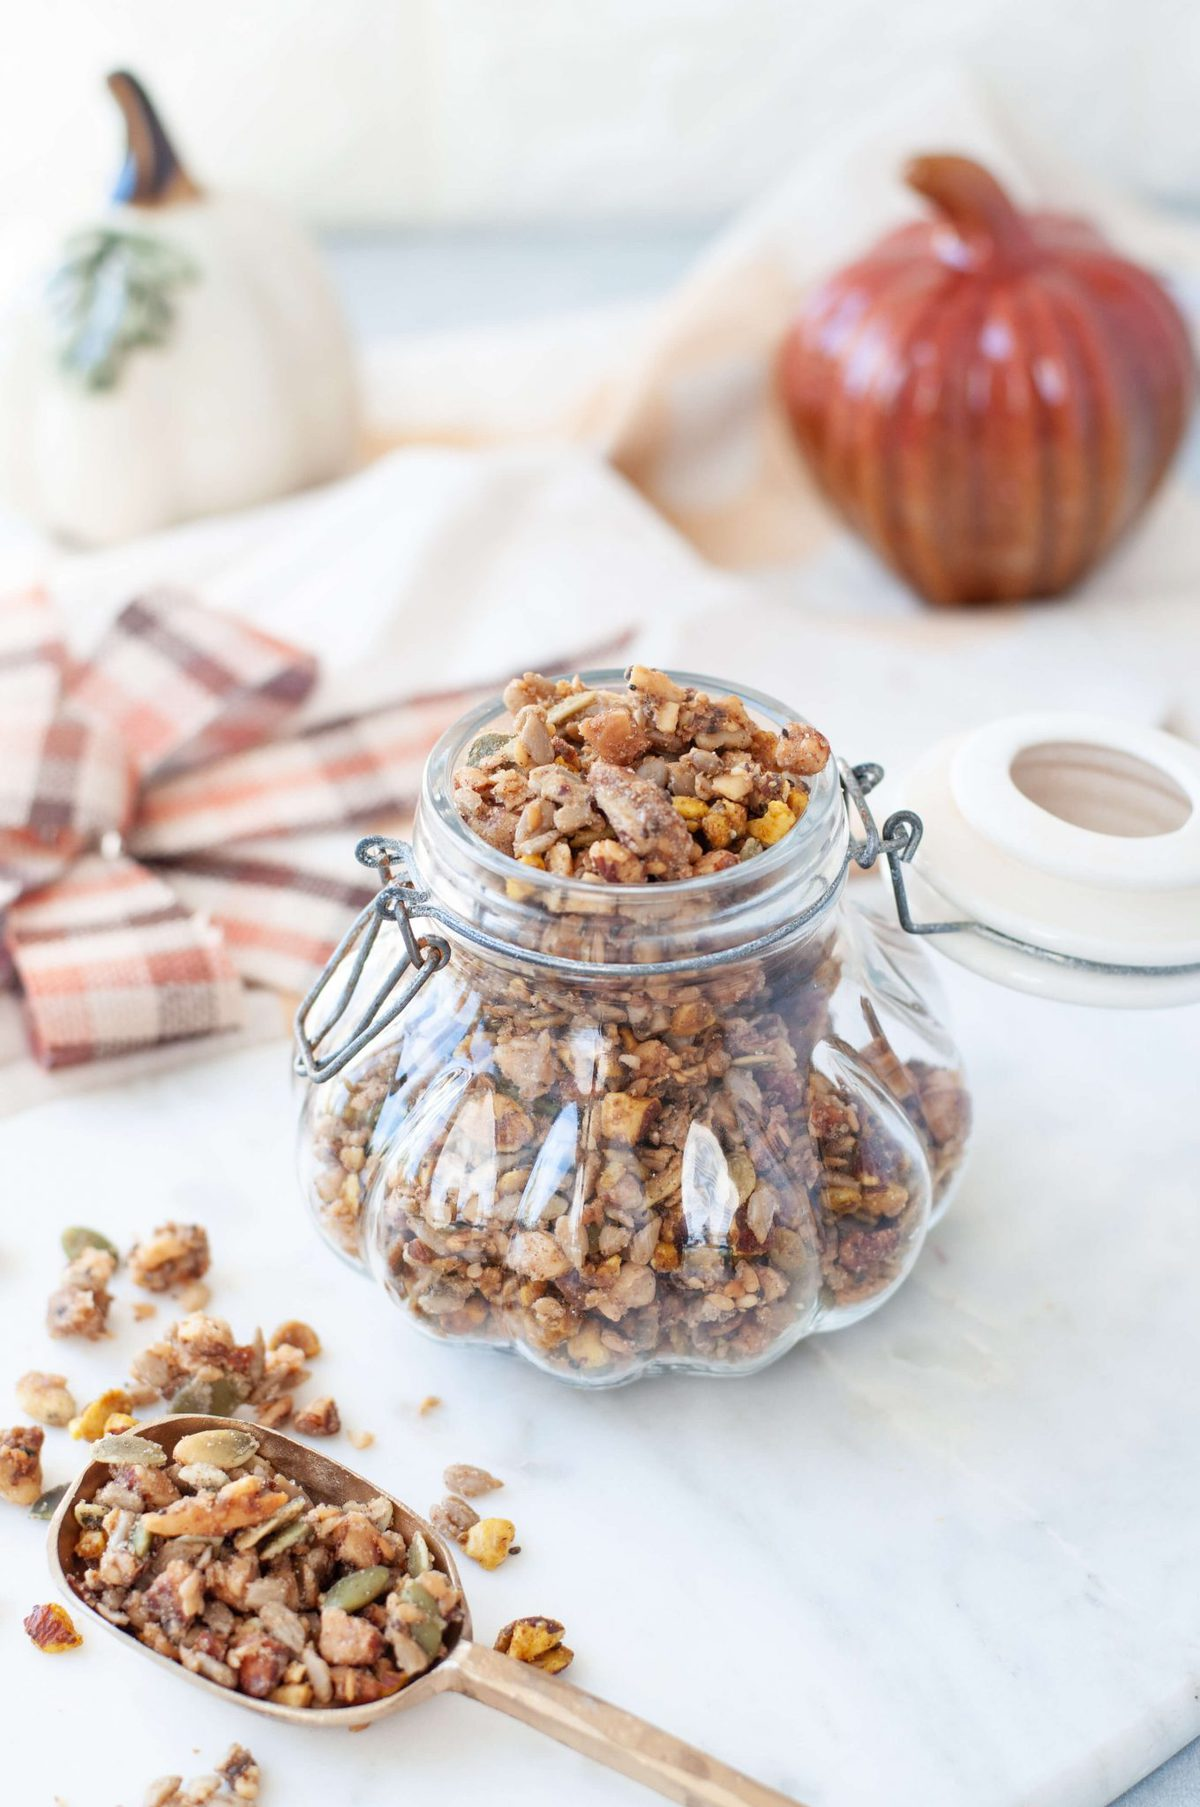 Gluten Free granola in a decorative glass jar, shaped like a pumpikin